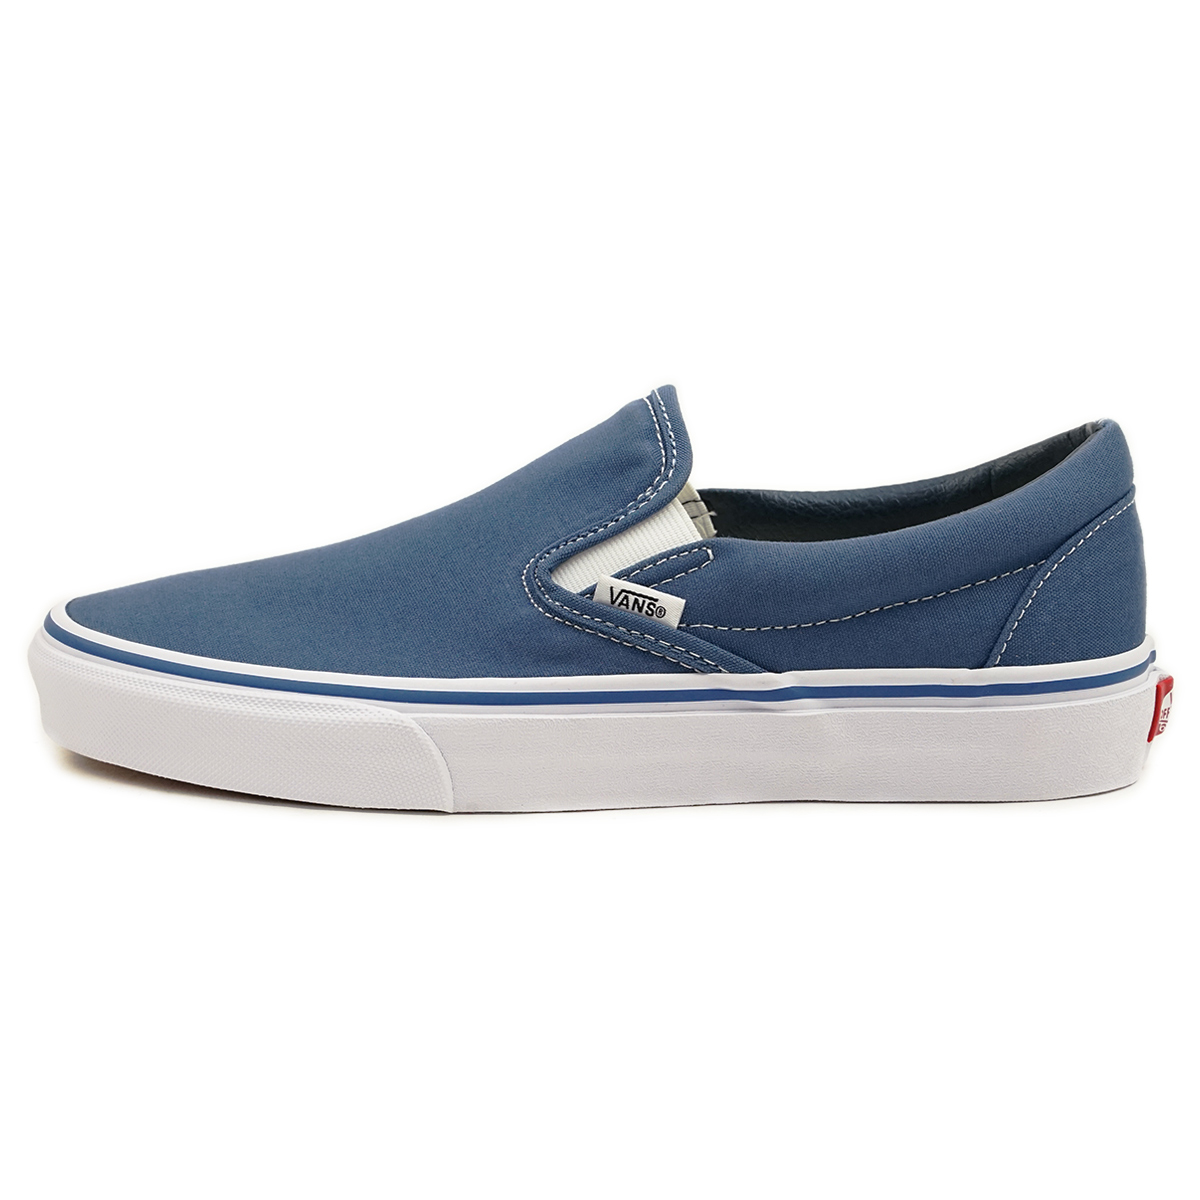 890ea02cbb246a Vans VANS United States standard classical music slip-ons navy (station  wagons slip-on CLASSIC SLIP-ON Navy)